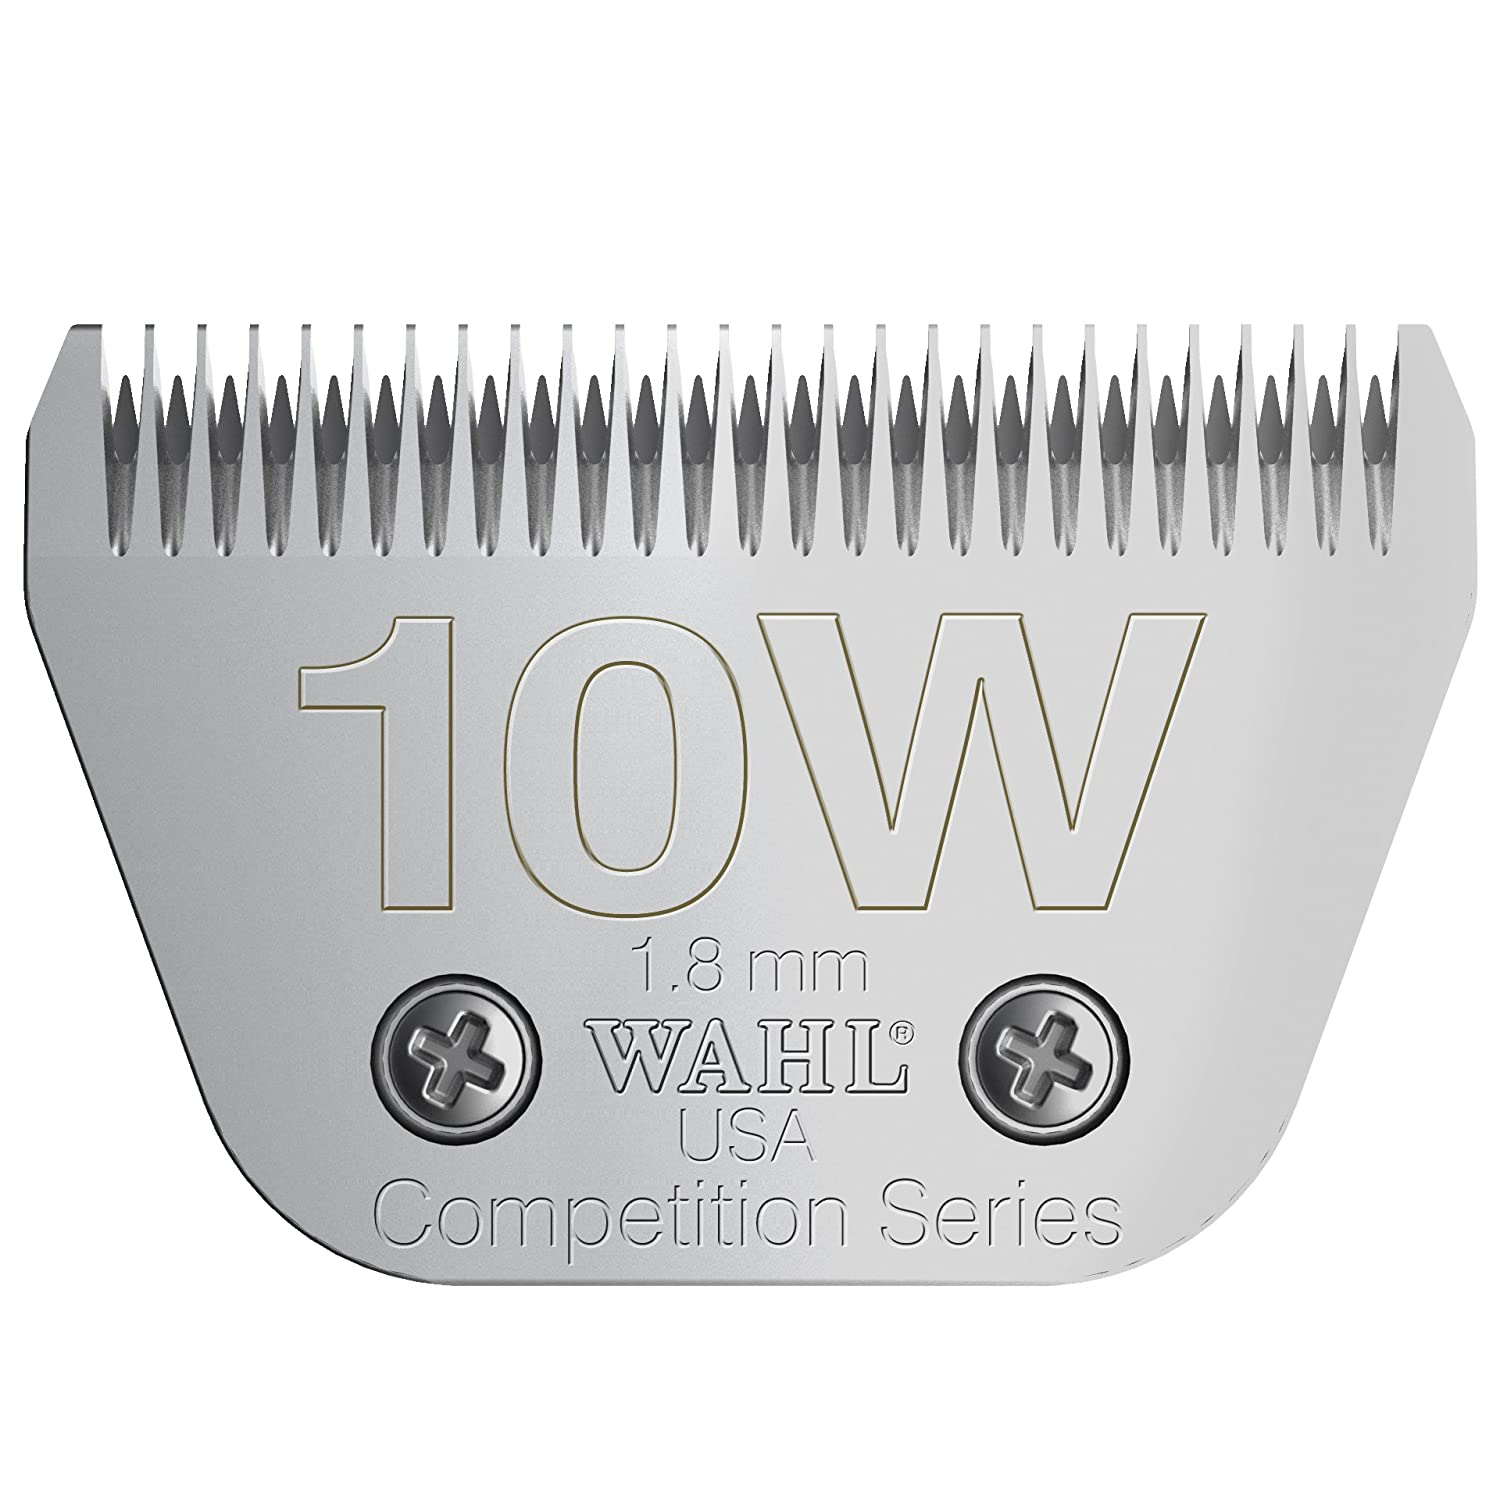 WAHL Professional Animal Competition Series Blade Wahl Clipper Corp. 2372-100